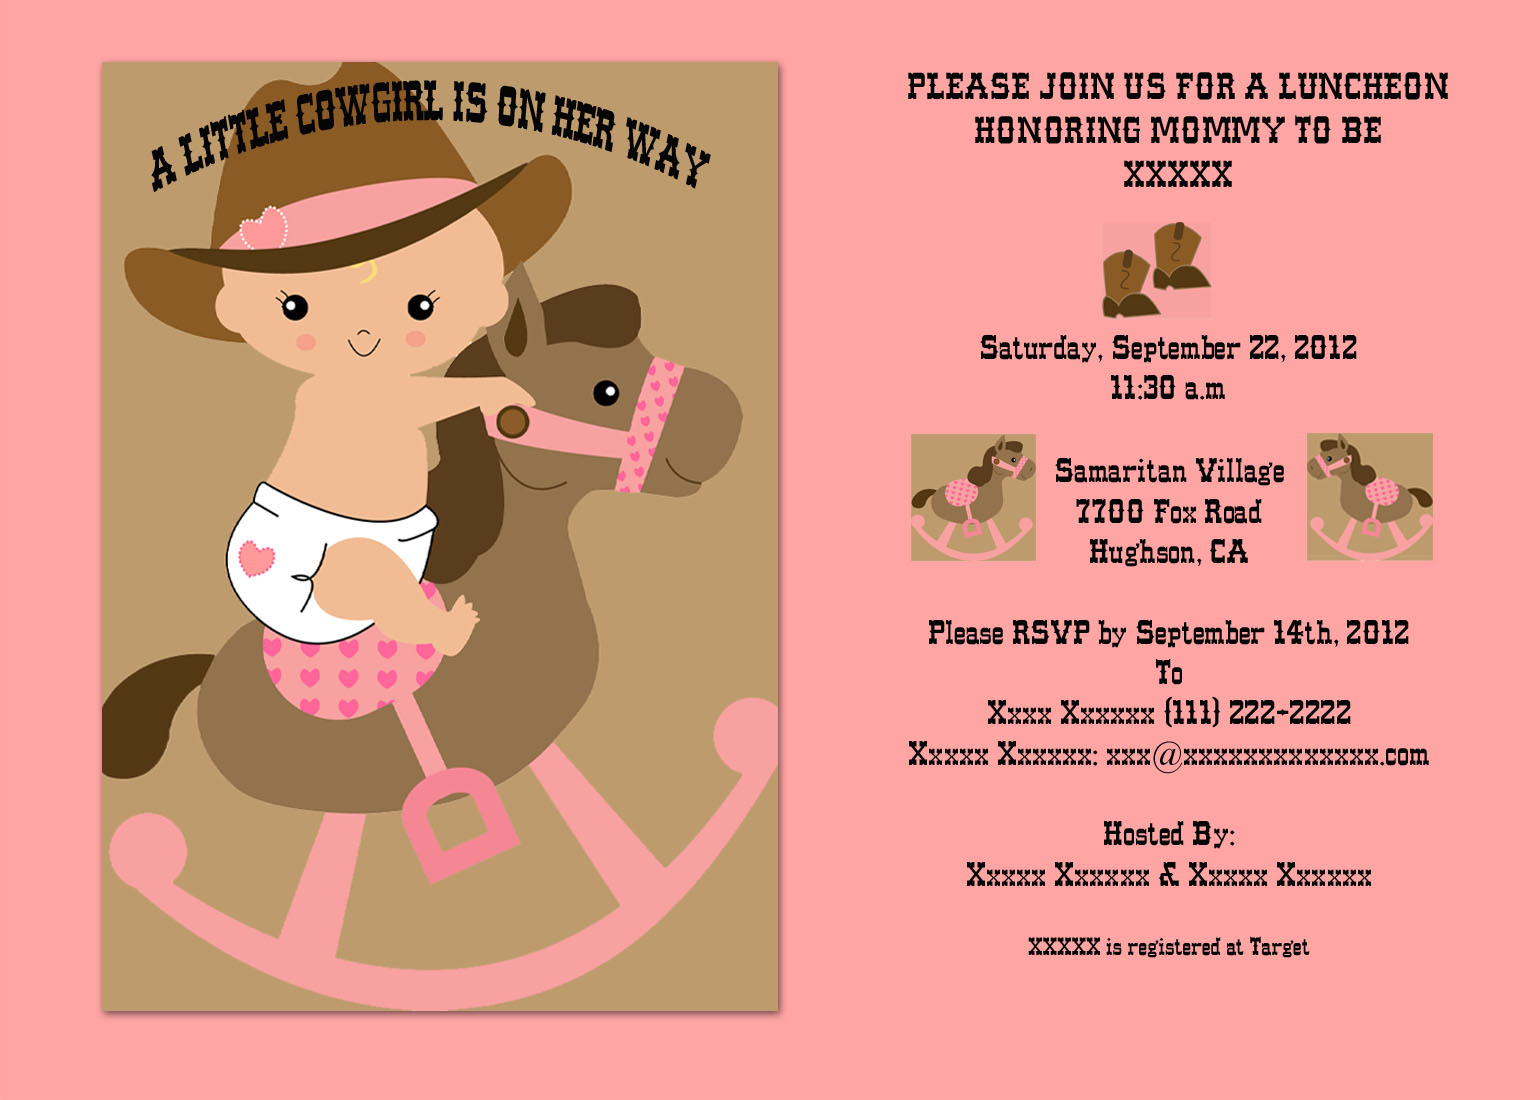 Cowgirl clipart baby shower Theme Baby shower purchased an